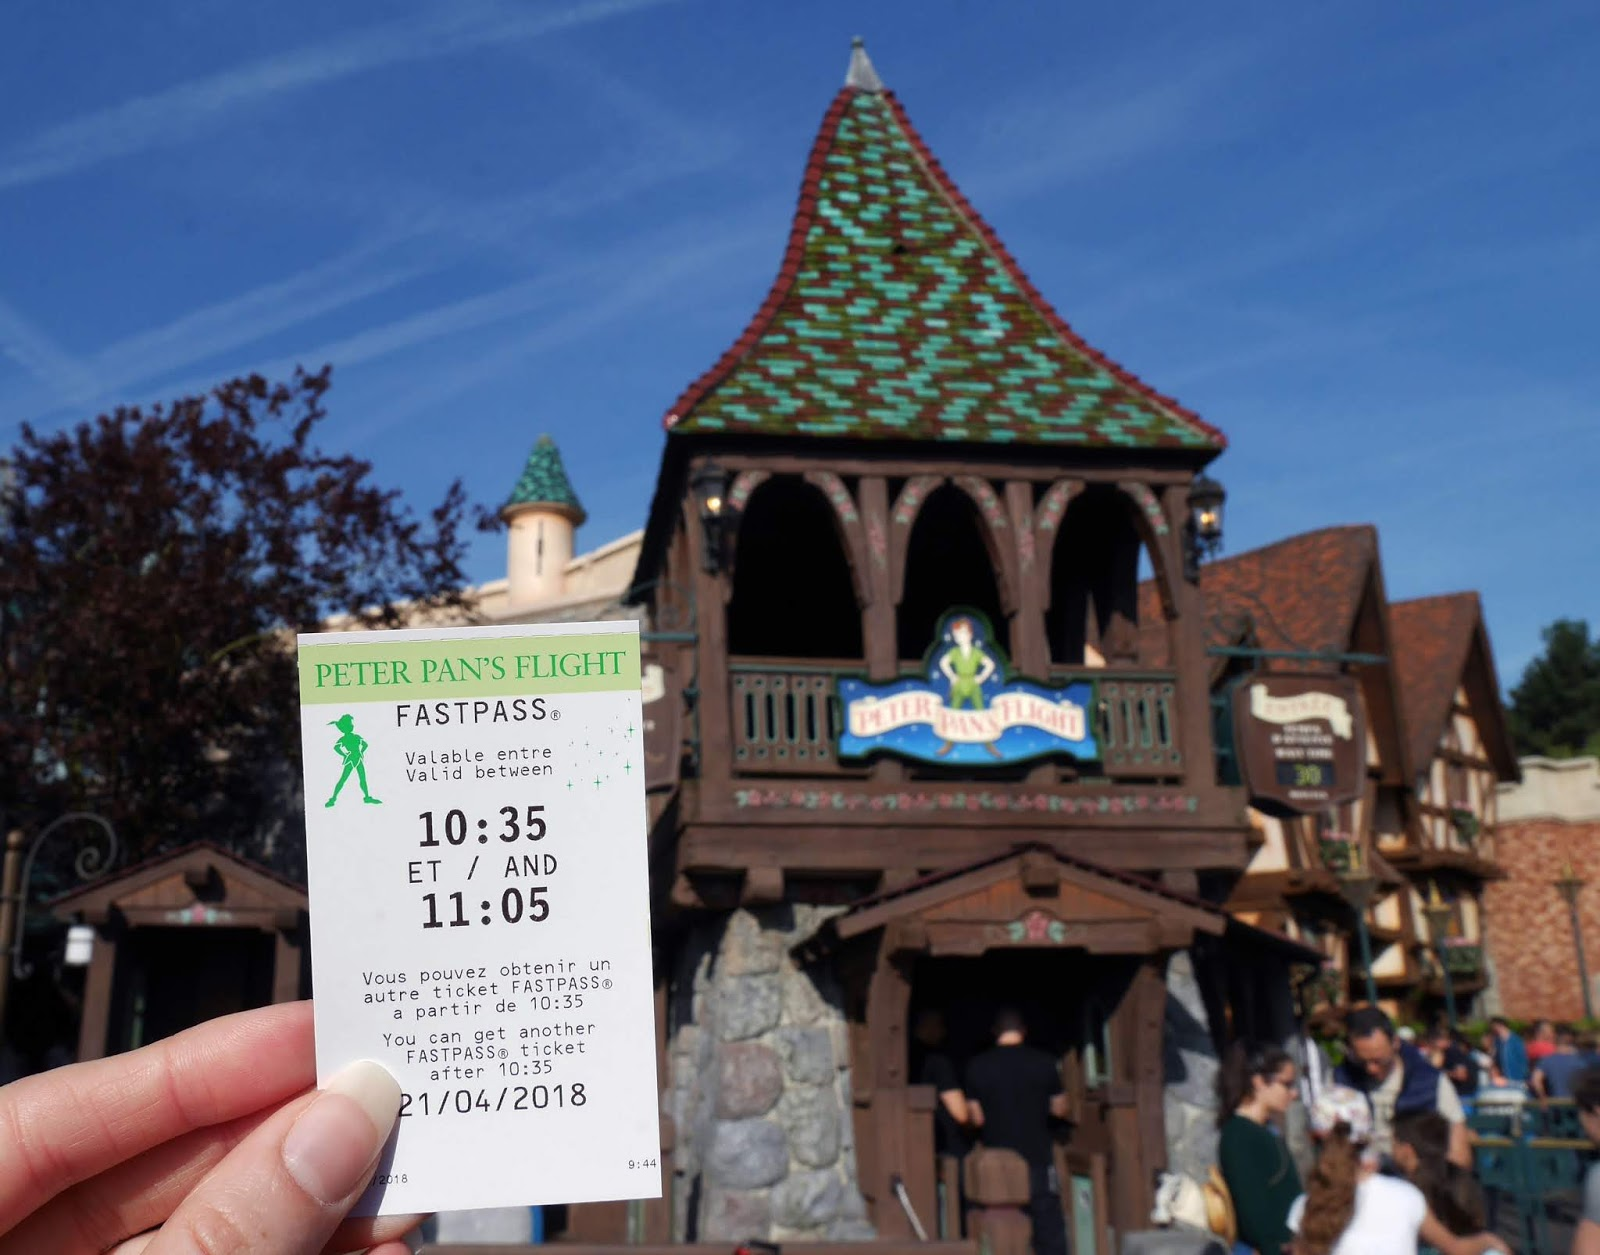 Peter Pan's Flight ride at Disneyland Paris